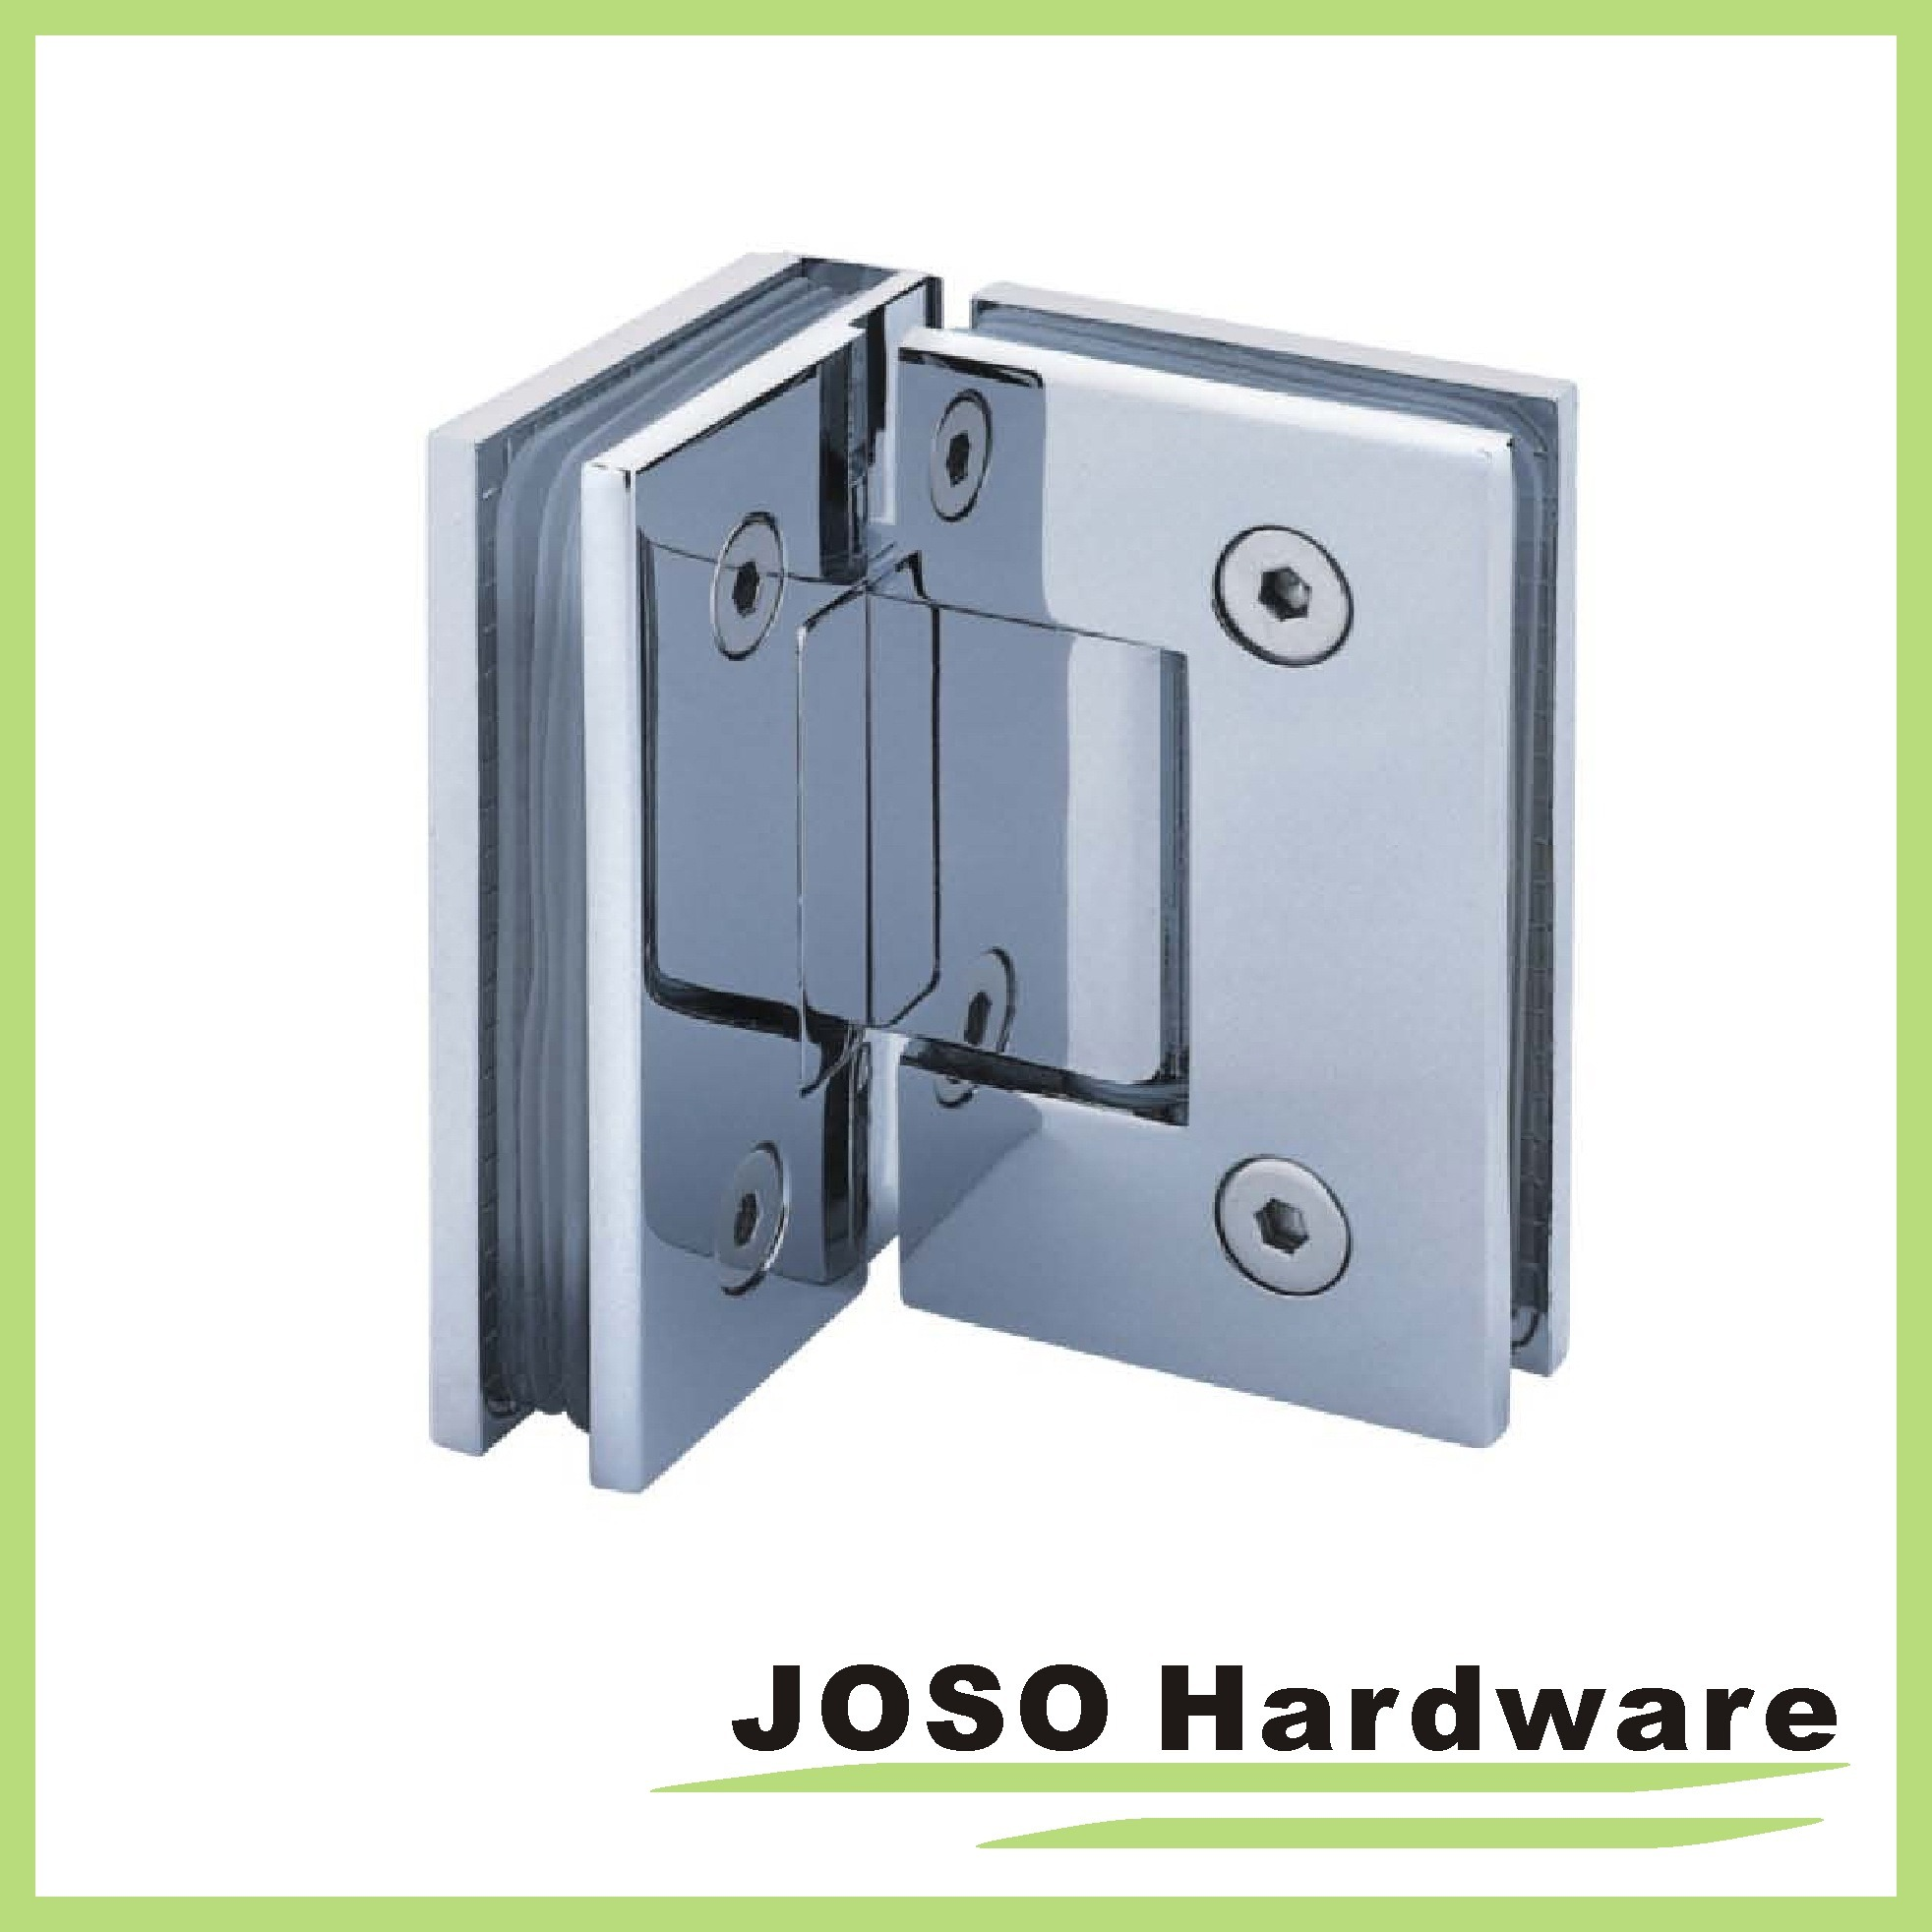 90 Degree Glass to Glass Brass Mount Shower Hinge Bh2004